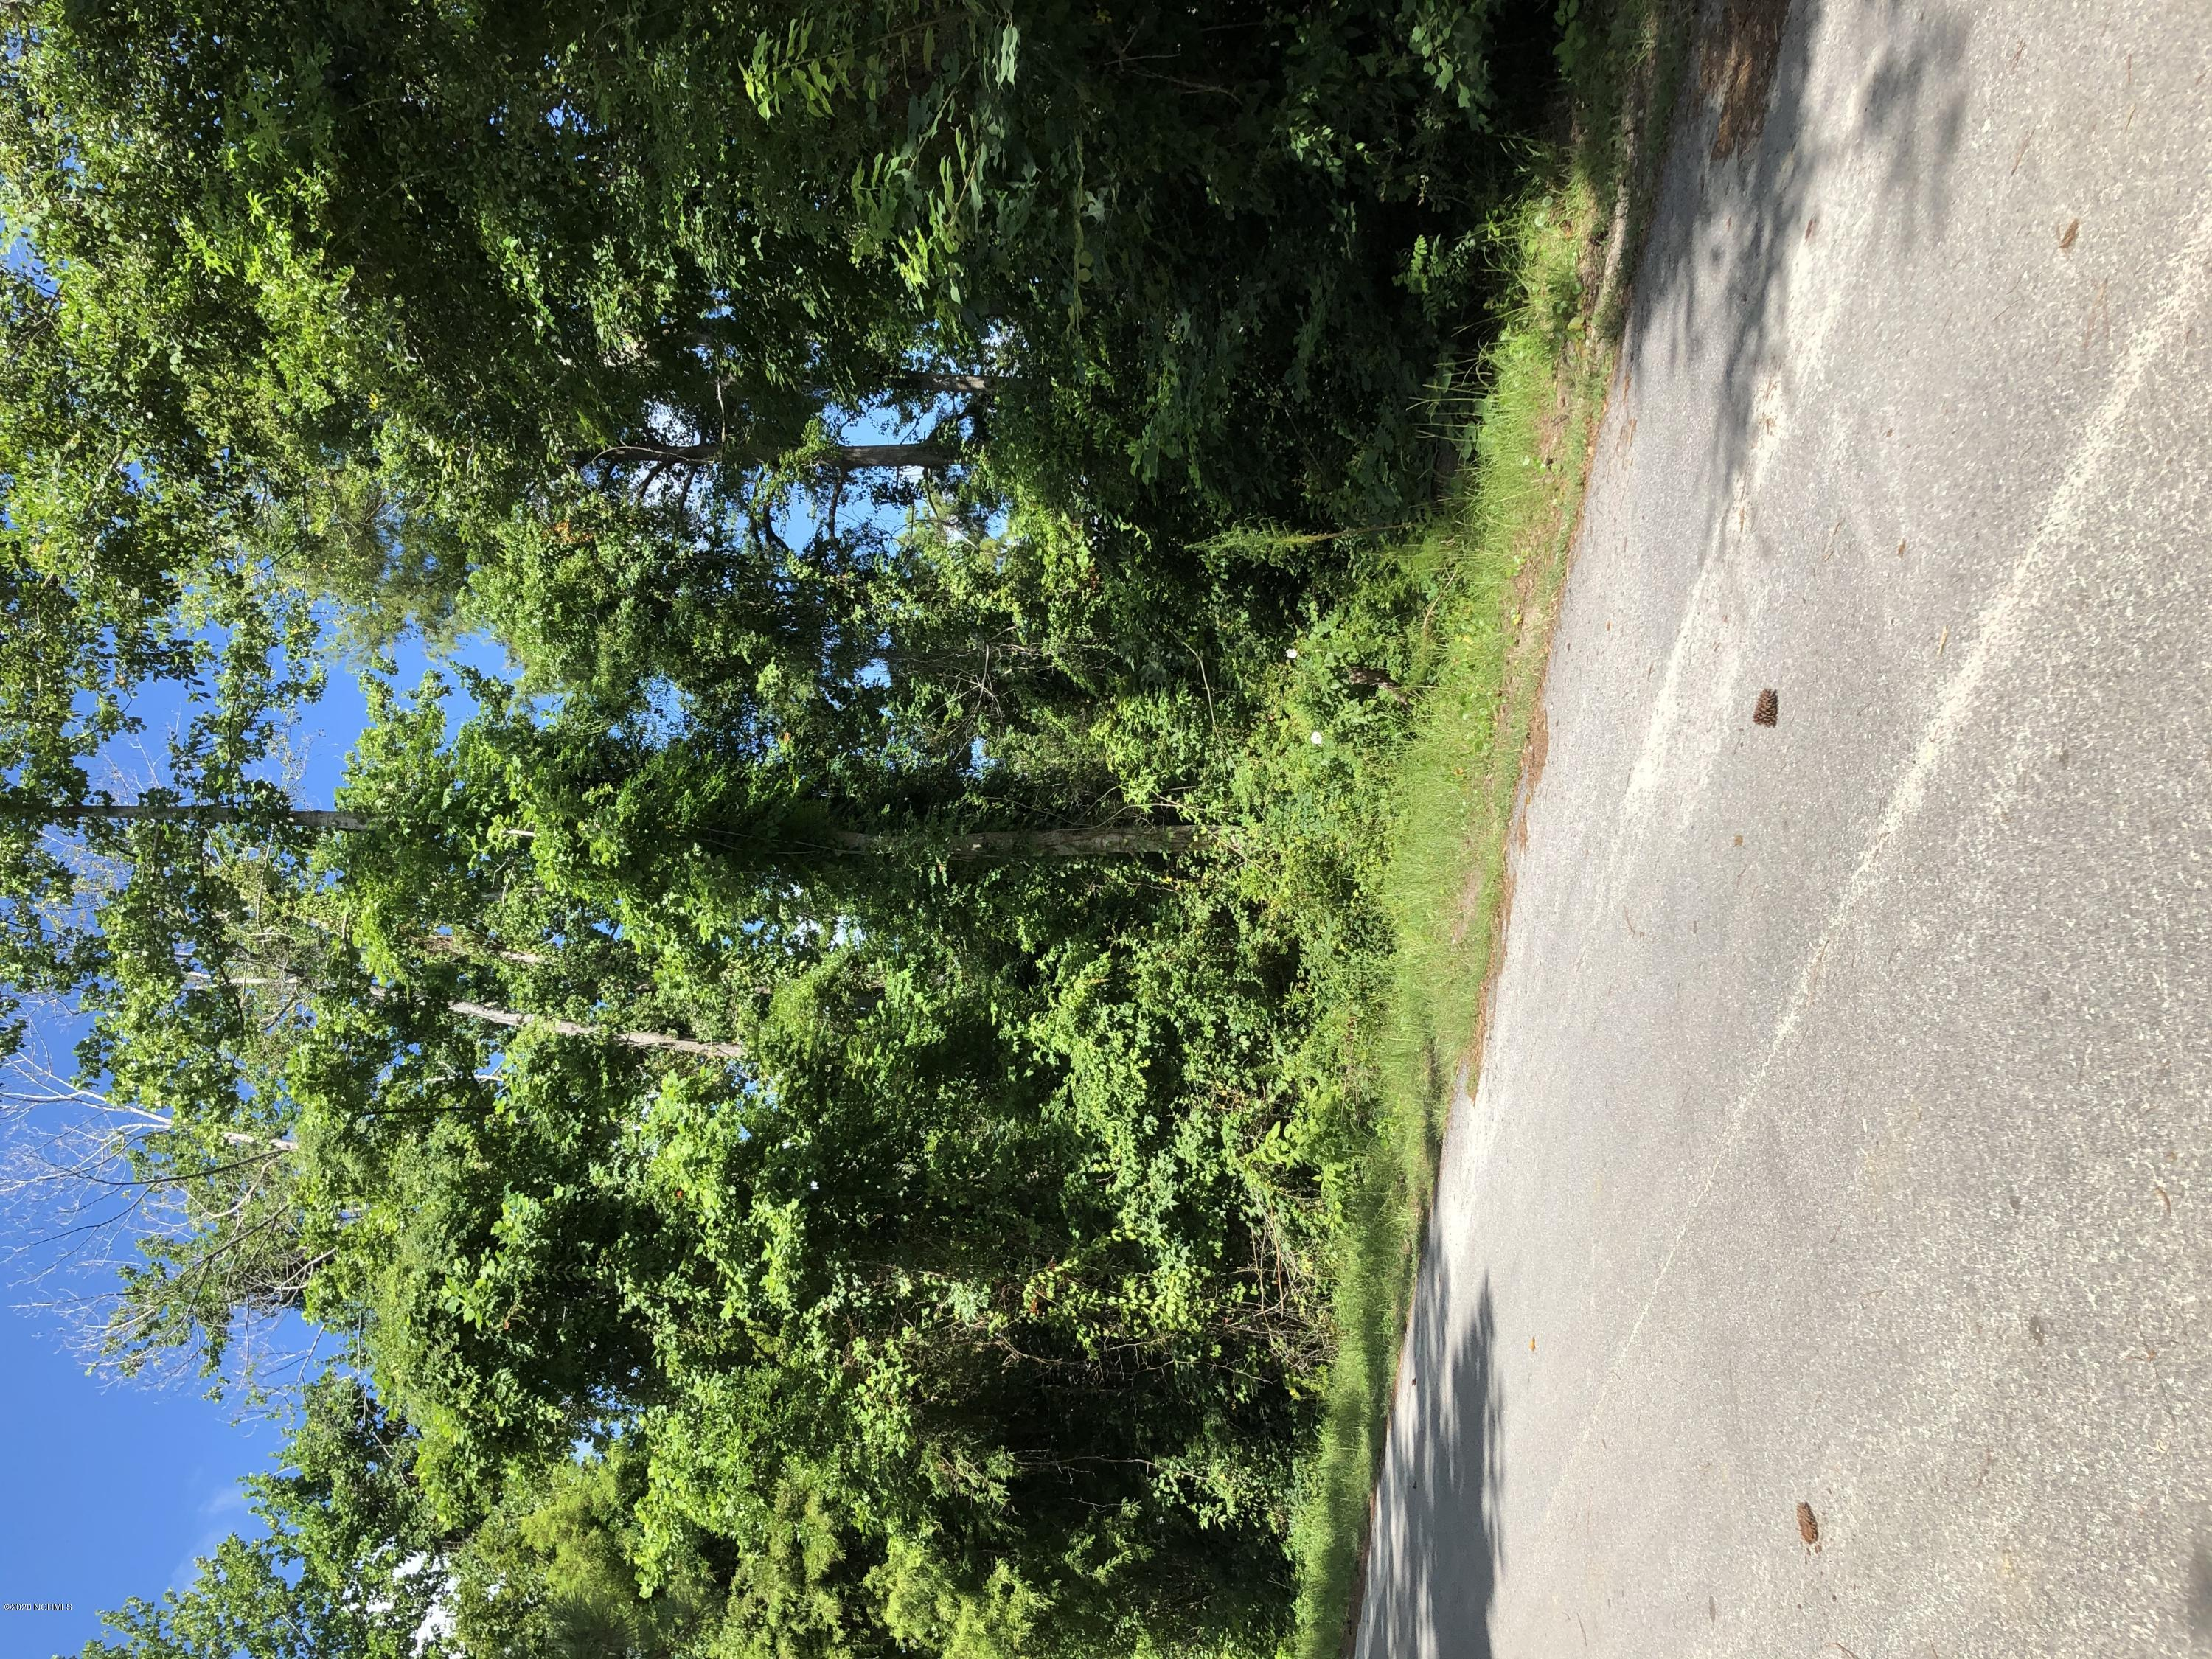 Enjoy the laid back salt life on  3/4 Acre canal lot  fronting New River. Access to Intracoastal Waterway and inlet to the ocean. High lot slopes down to water. State Wildlife Ramp and marina close by. Only minutes to Topsail beaches.